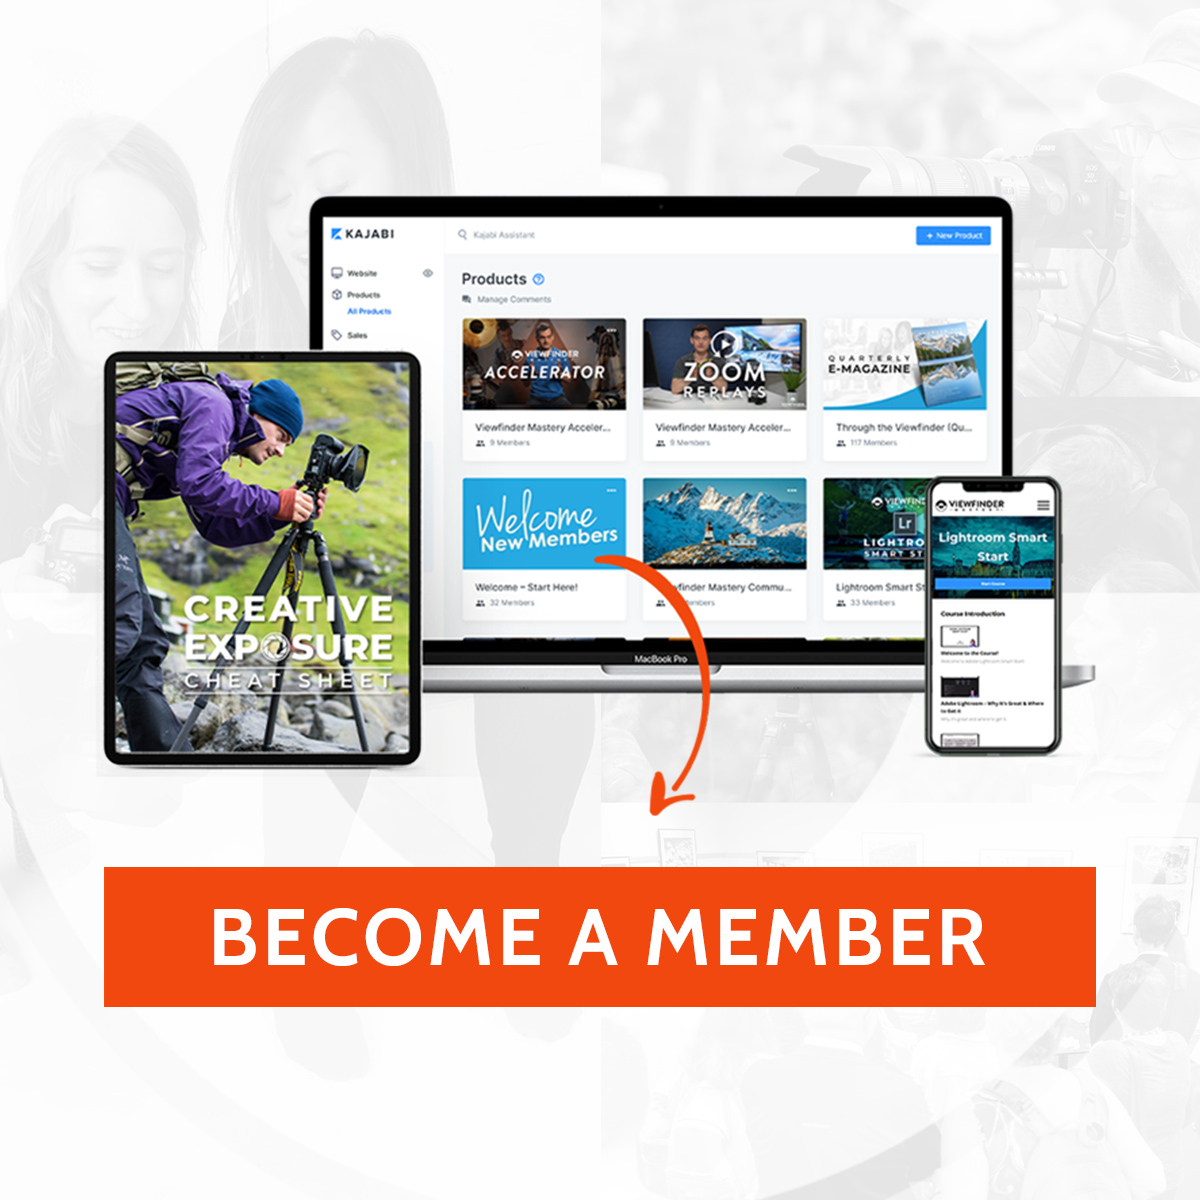 Viewfinder Mastery Become a Member